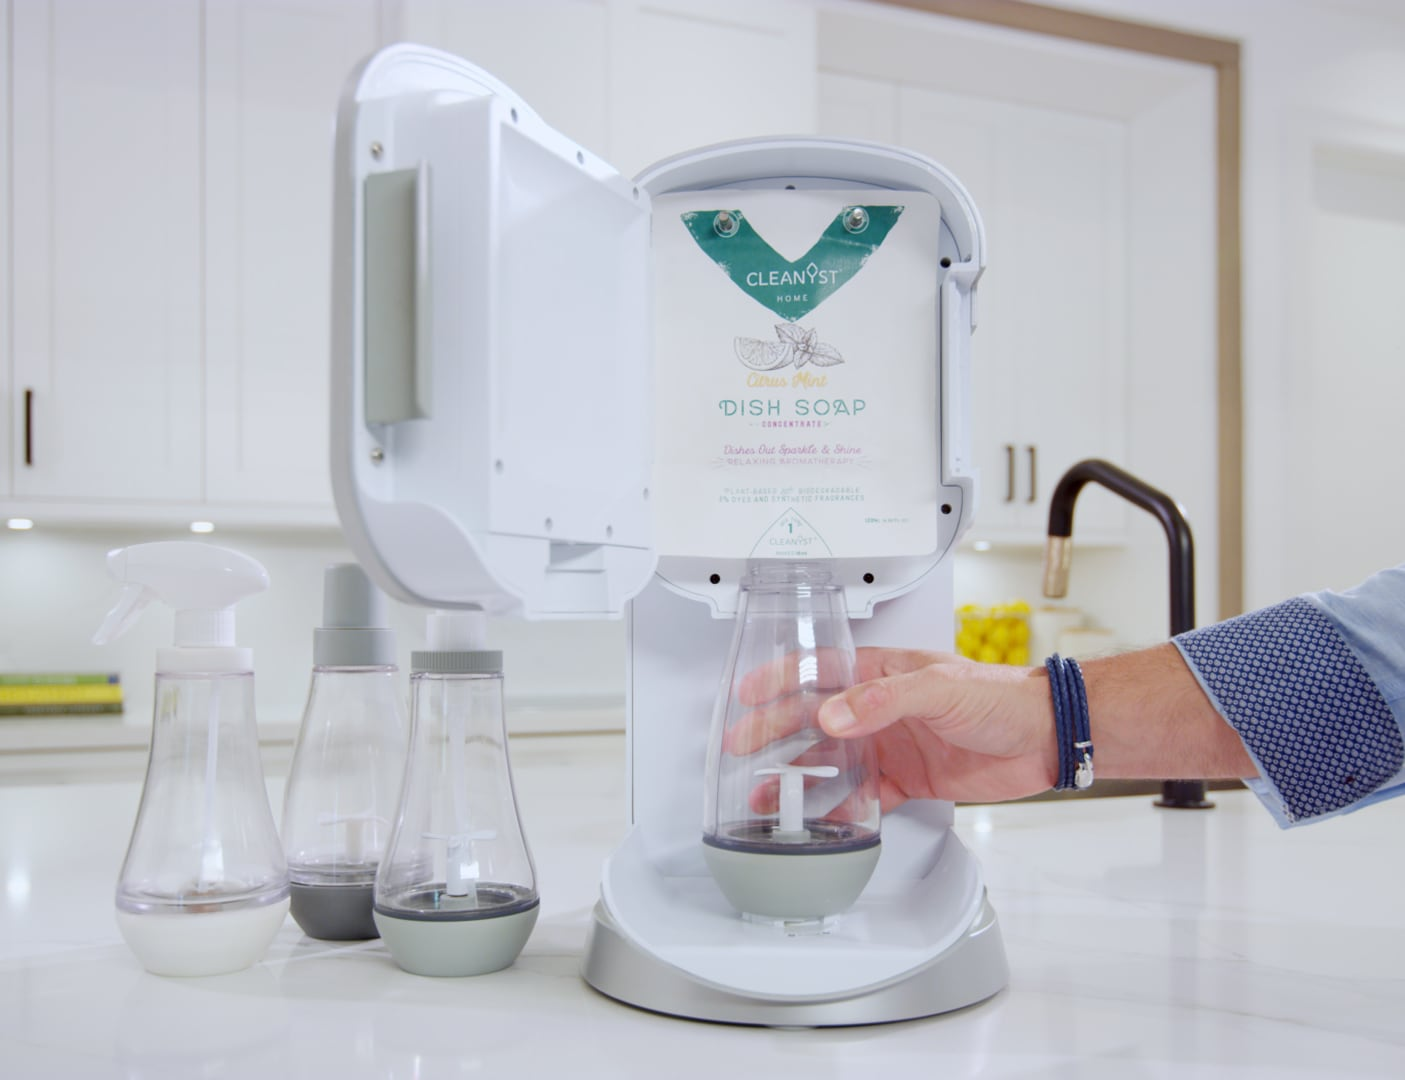 Cleanyst Home & Body Care Product Mixing System saves money and the planet